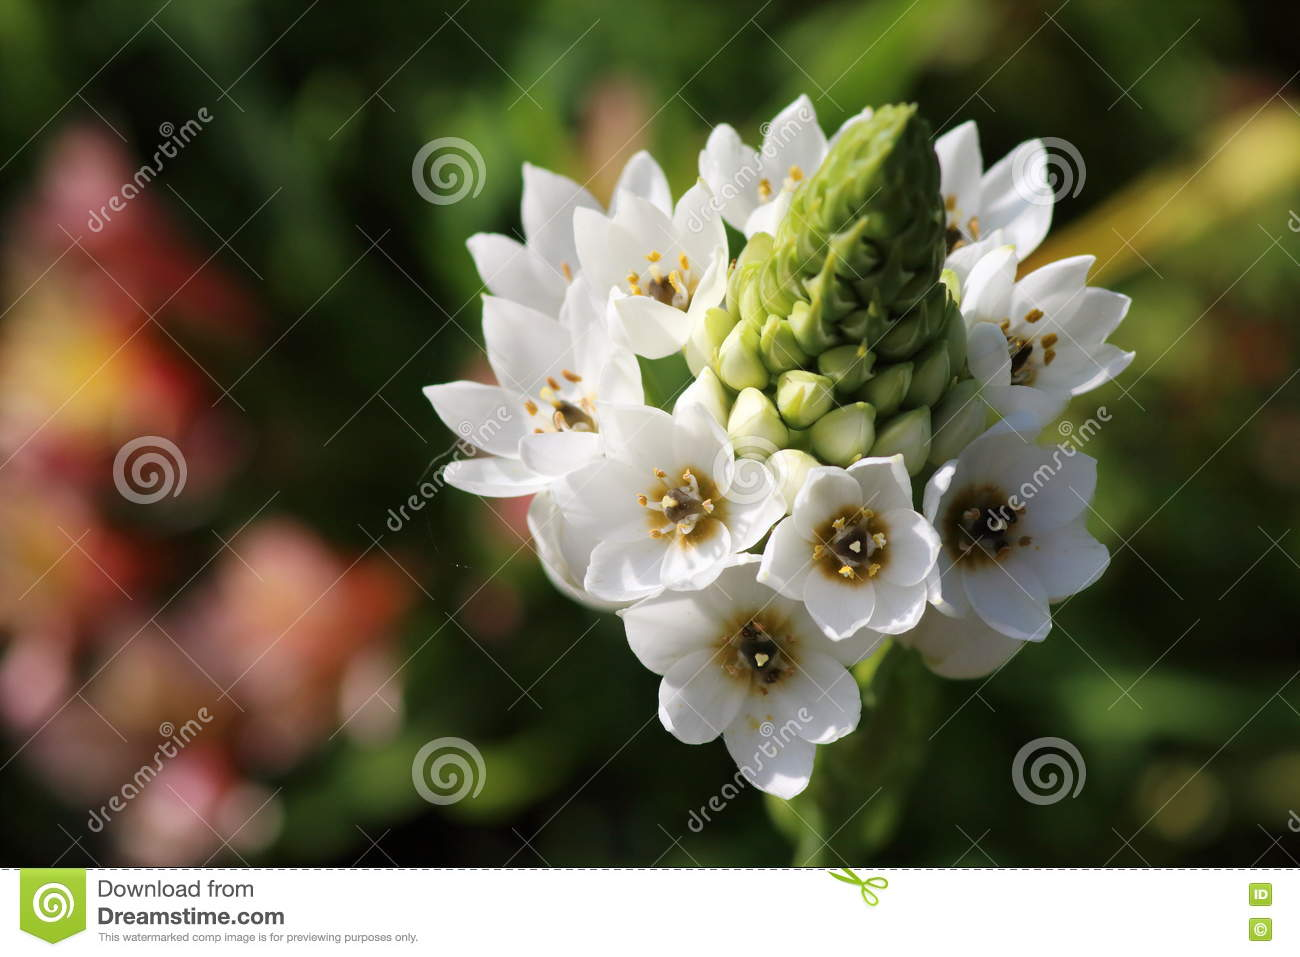 Bulb of white flowers stock photo image of beautiful 76518466 bulb of white flowers mightylinksfo